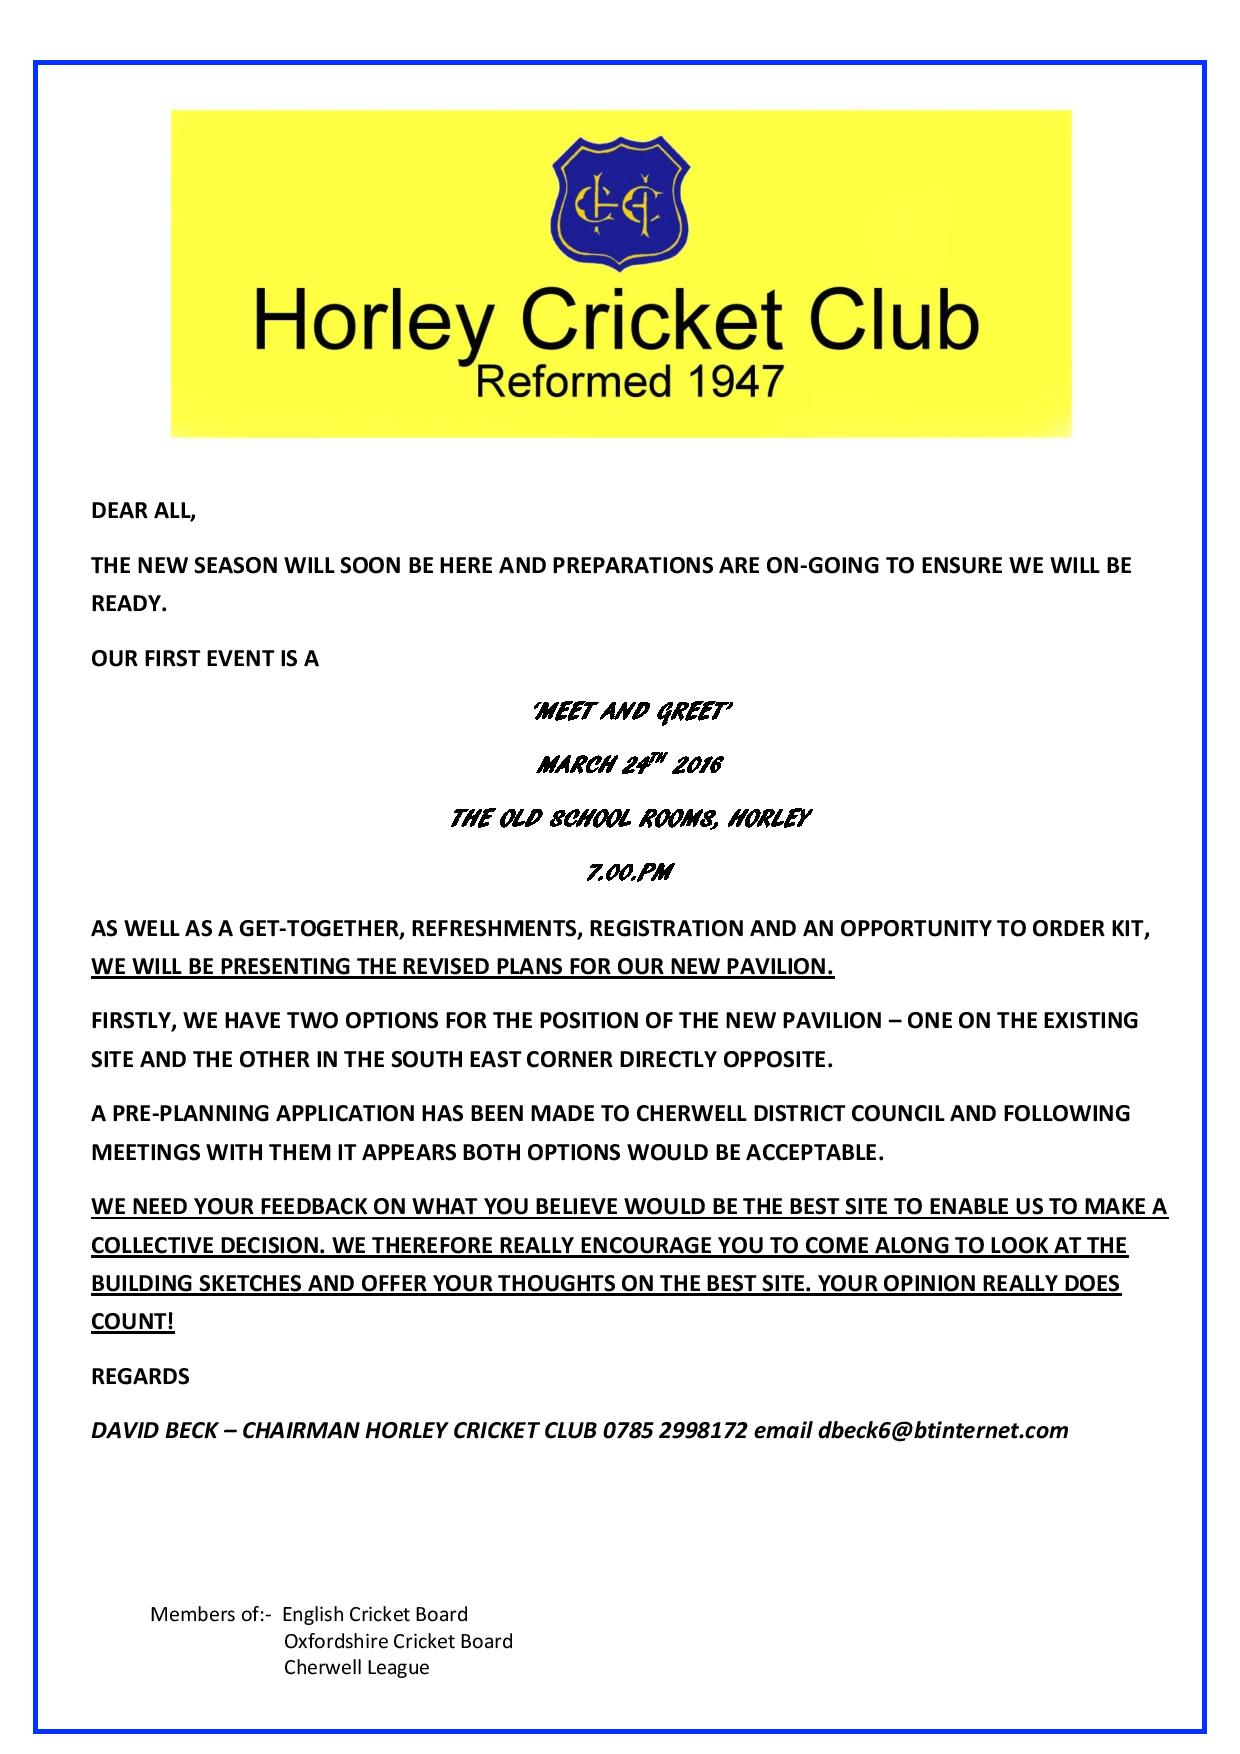 Cricket Club Village Invite Thursday March 24th Thehorleyviews